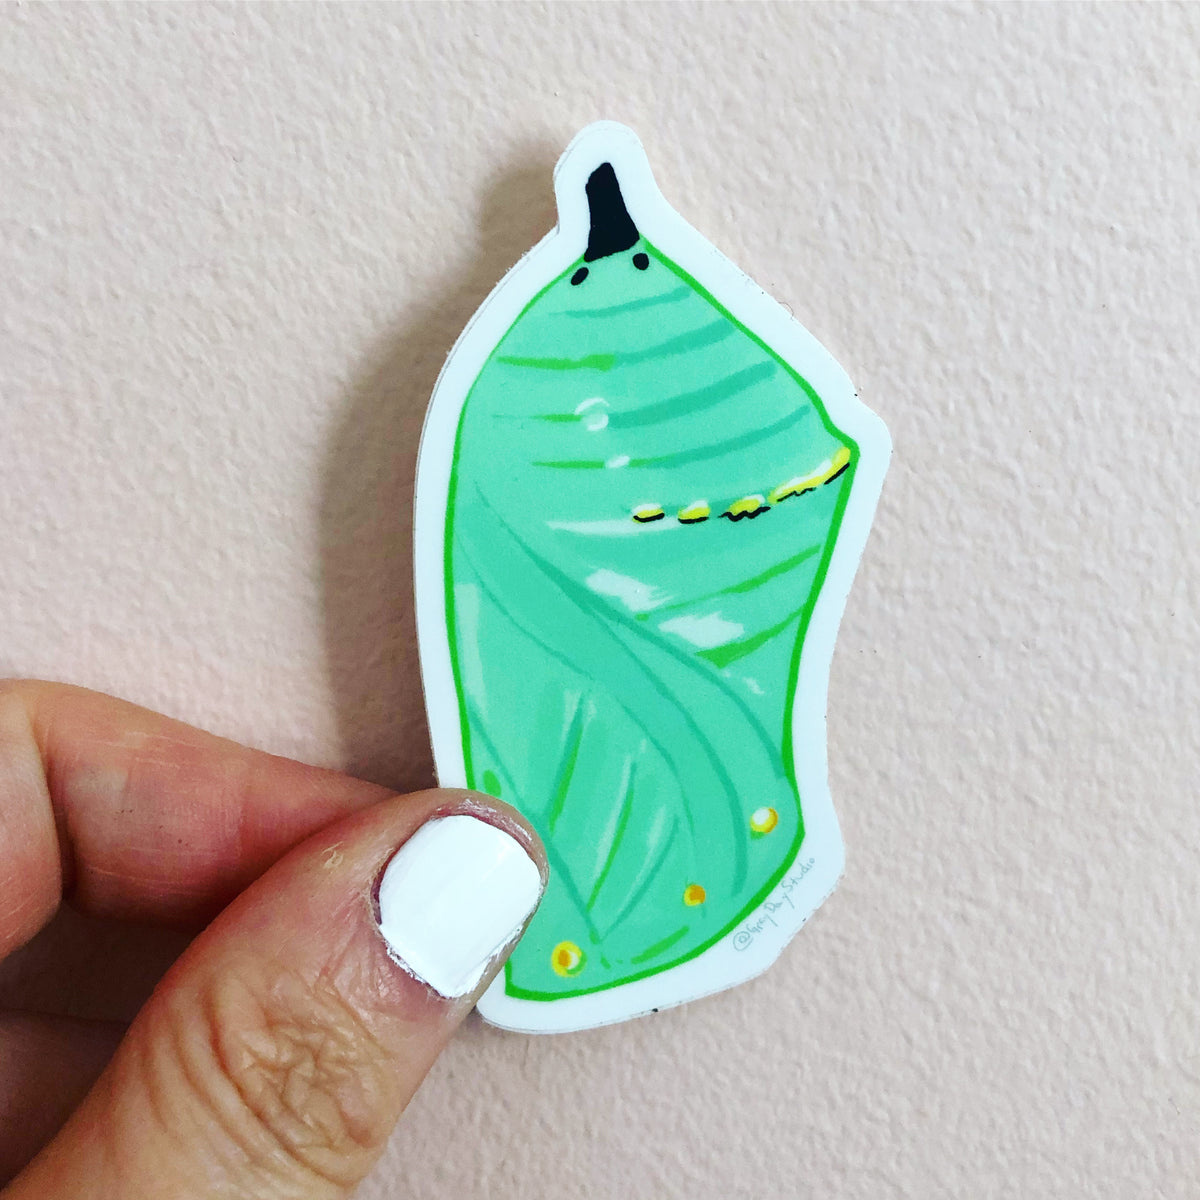 Chrysalis sticker, manarch cocoon sticker, by Abigail Gray Swartz